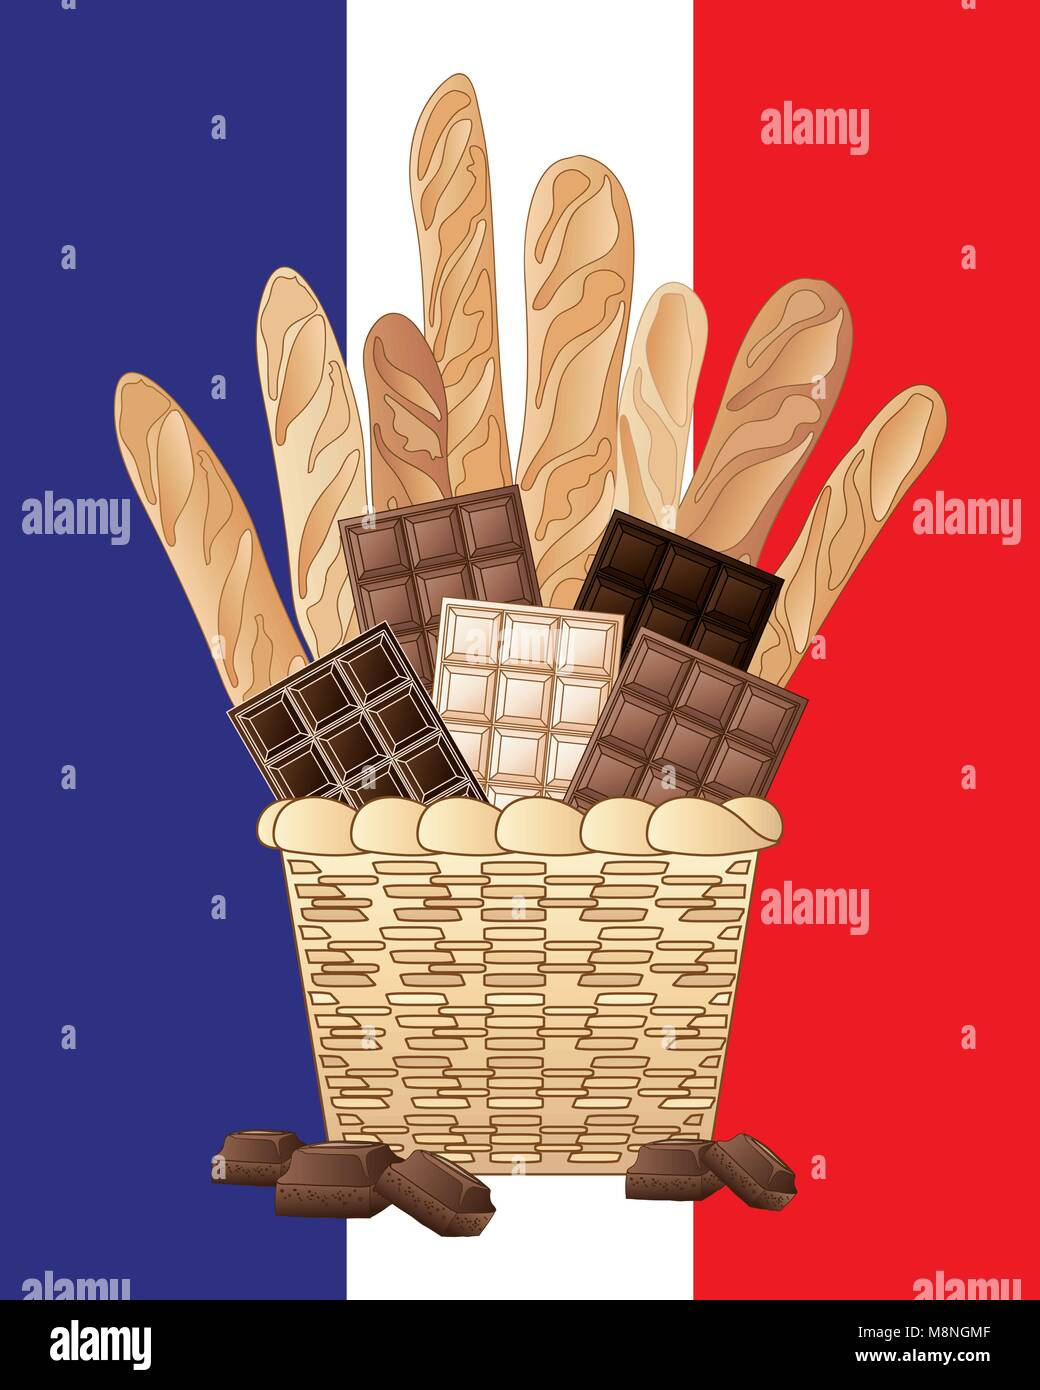 a vector illustration in eps 10 format of a basket of long French loaves with bars of milk plain and white chocolate - Stock Image